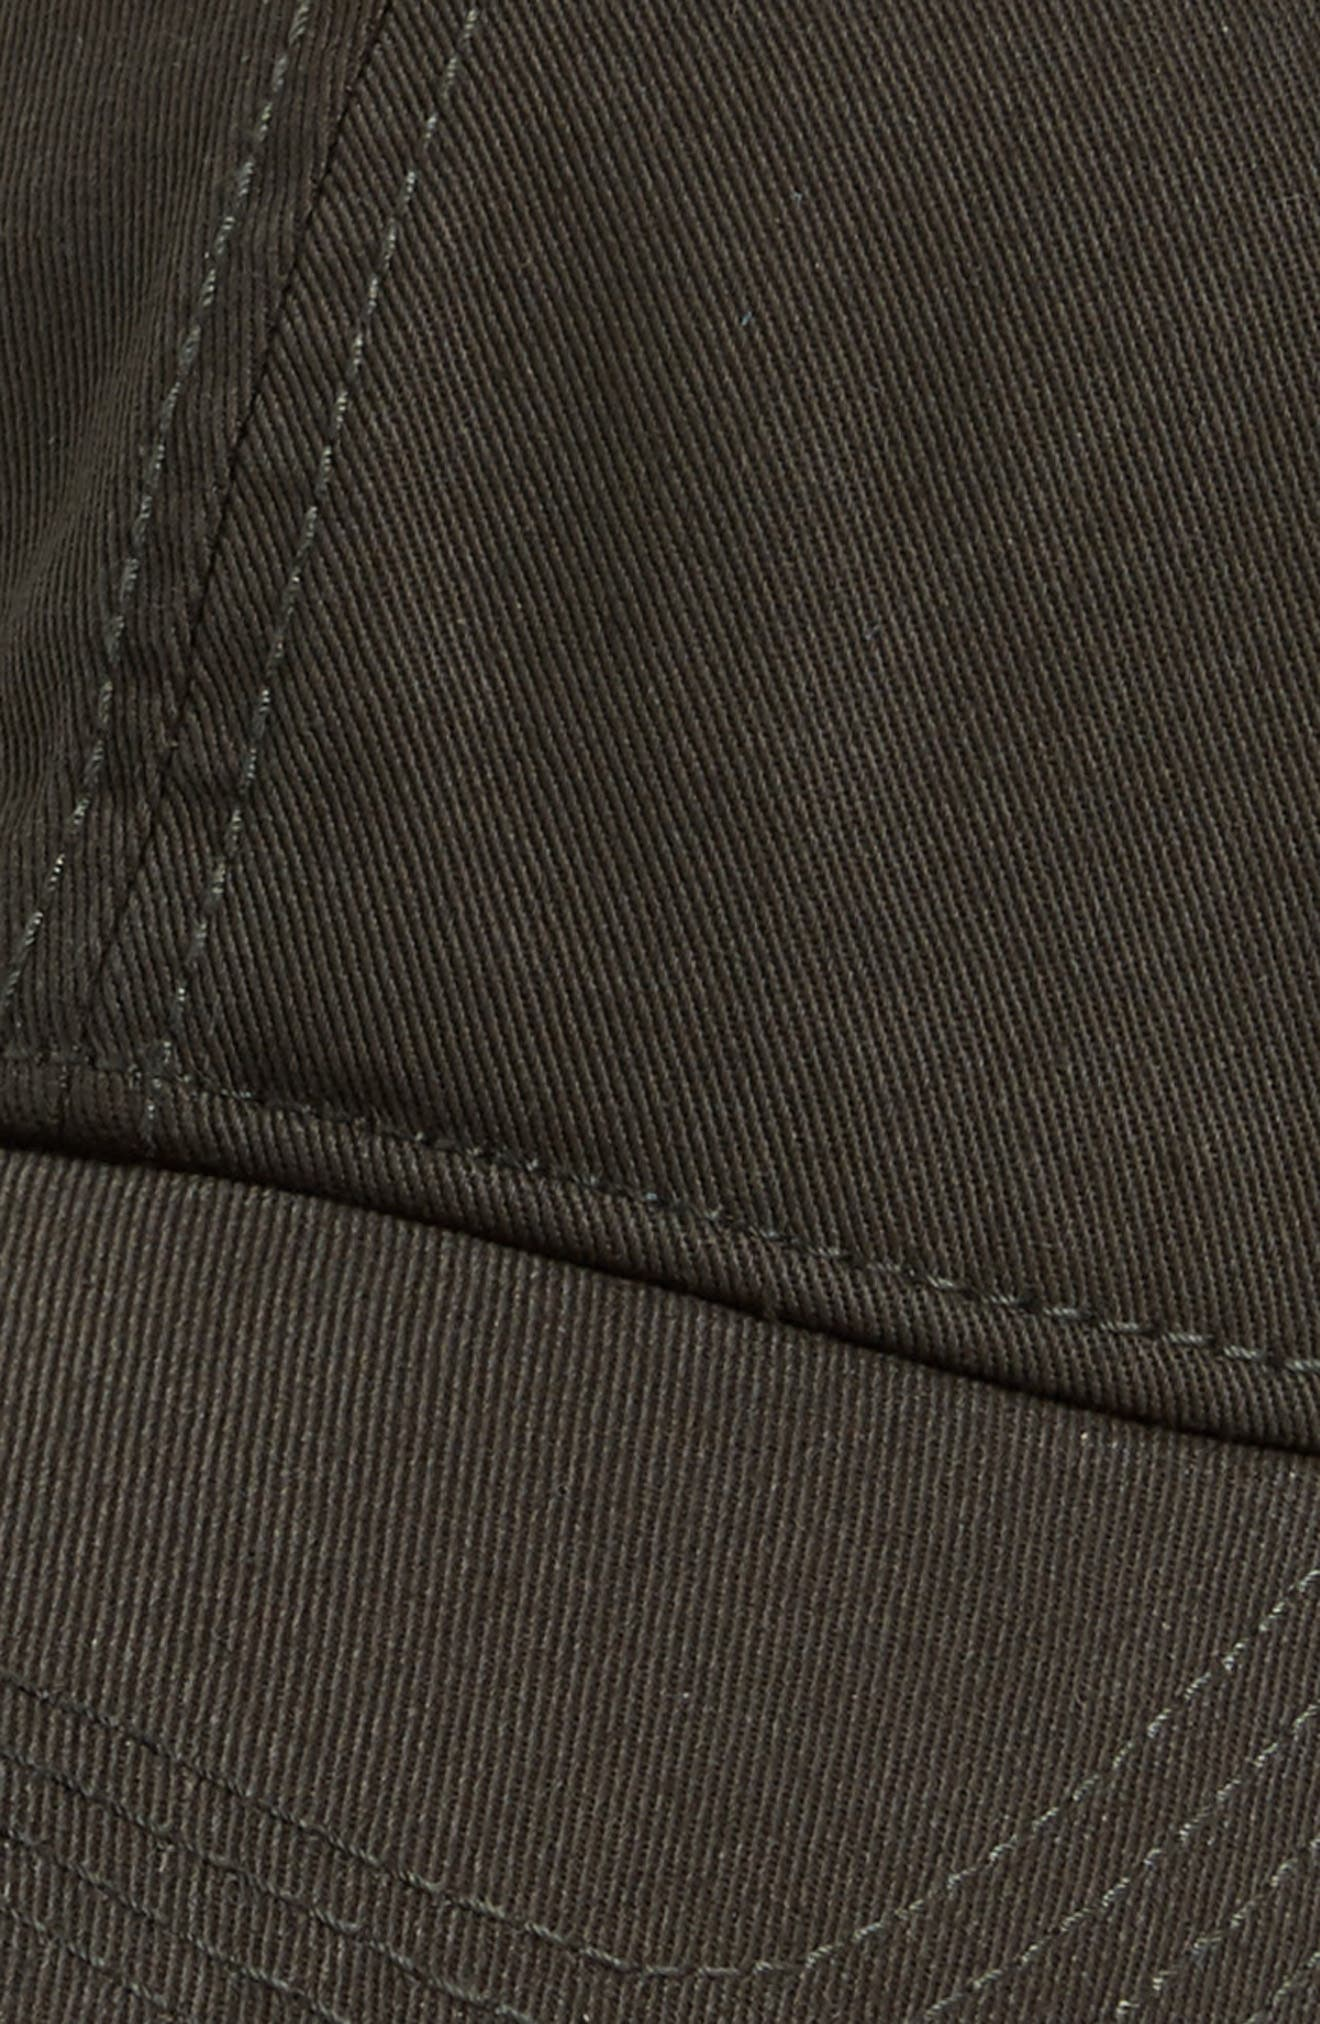 'Classic' Cap,                             Alternate thumbnail 3, color,                             Sherwood